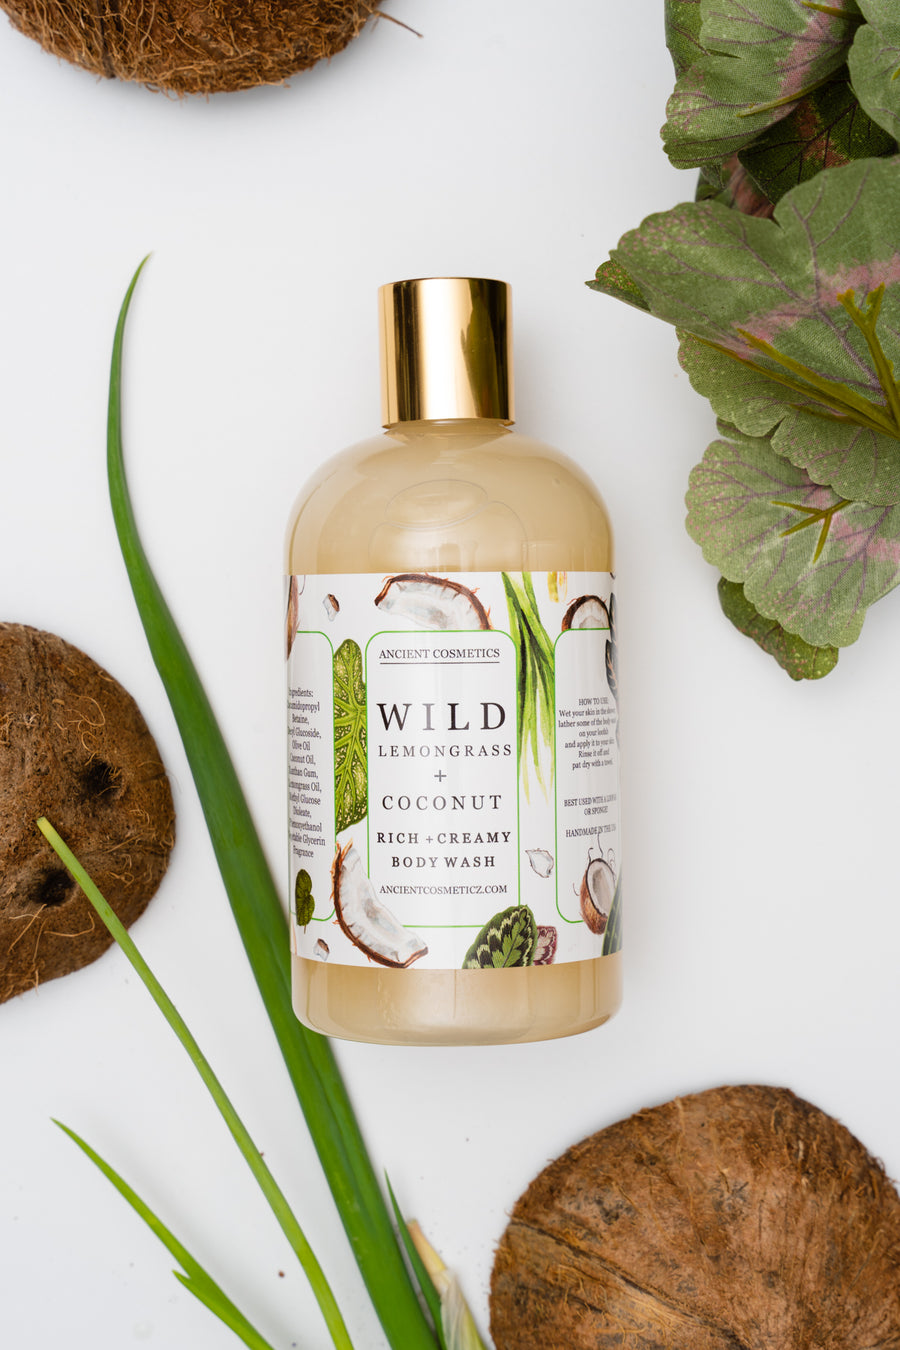 Wild Lemongrass + Coconut Body Wash